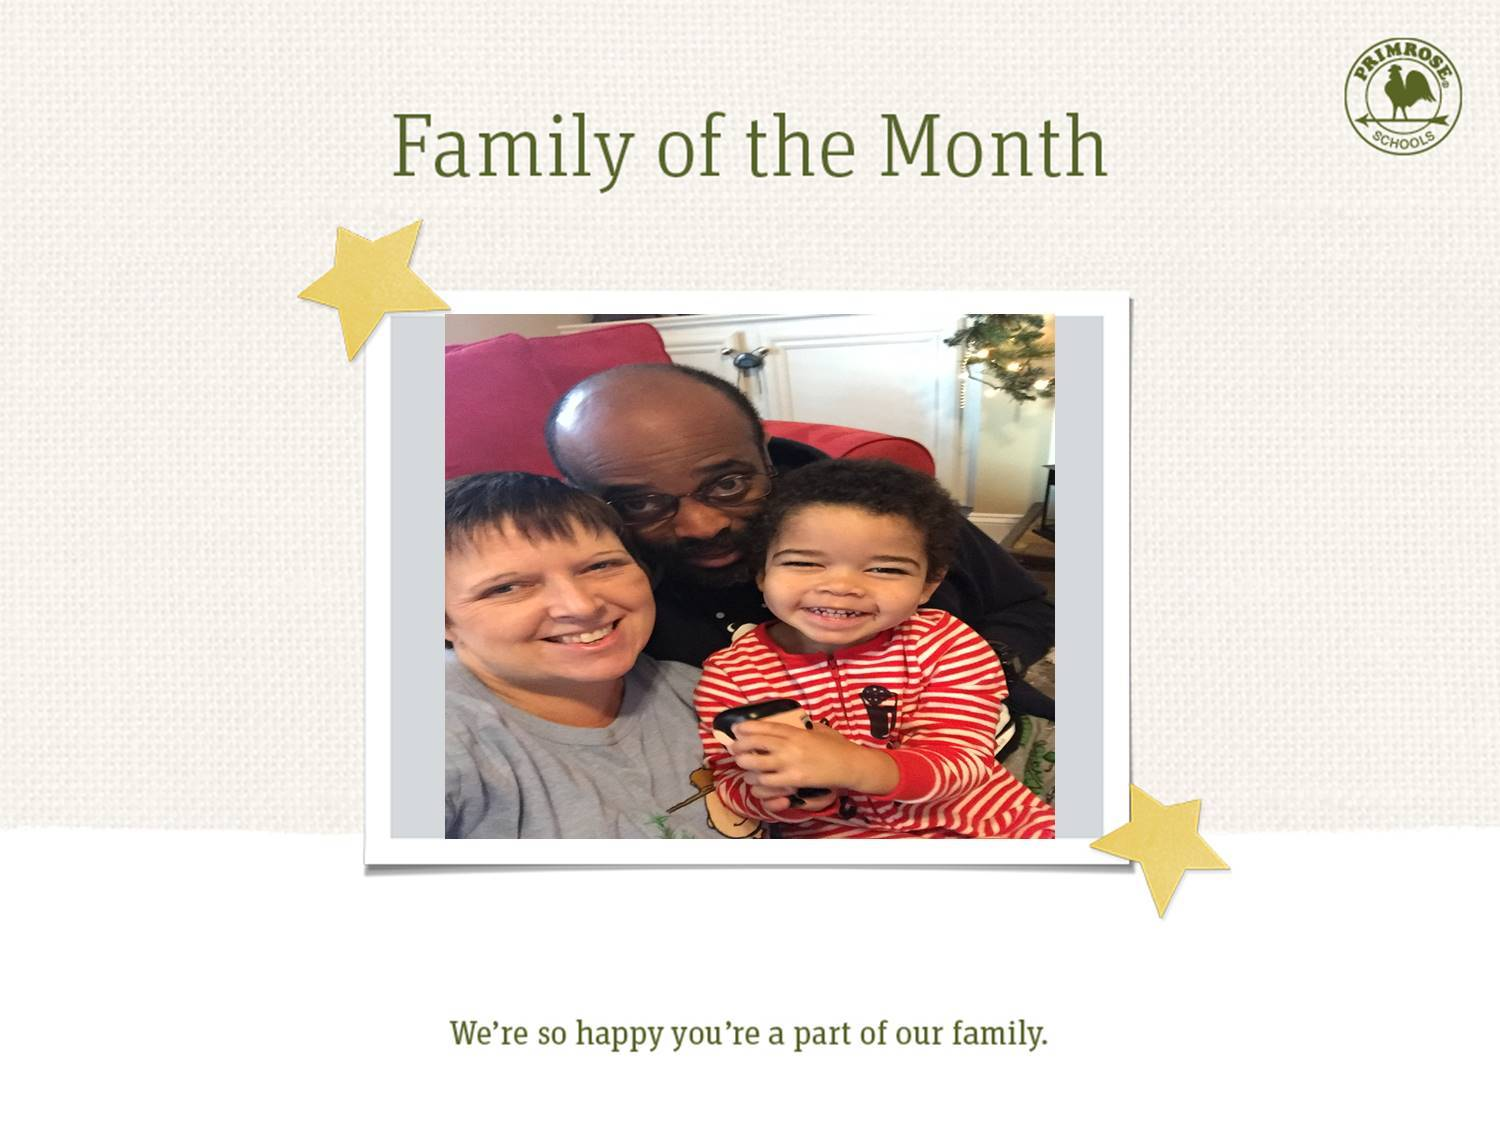 The Godwin family, family of the month